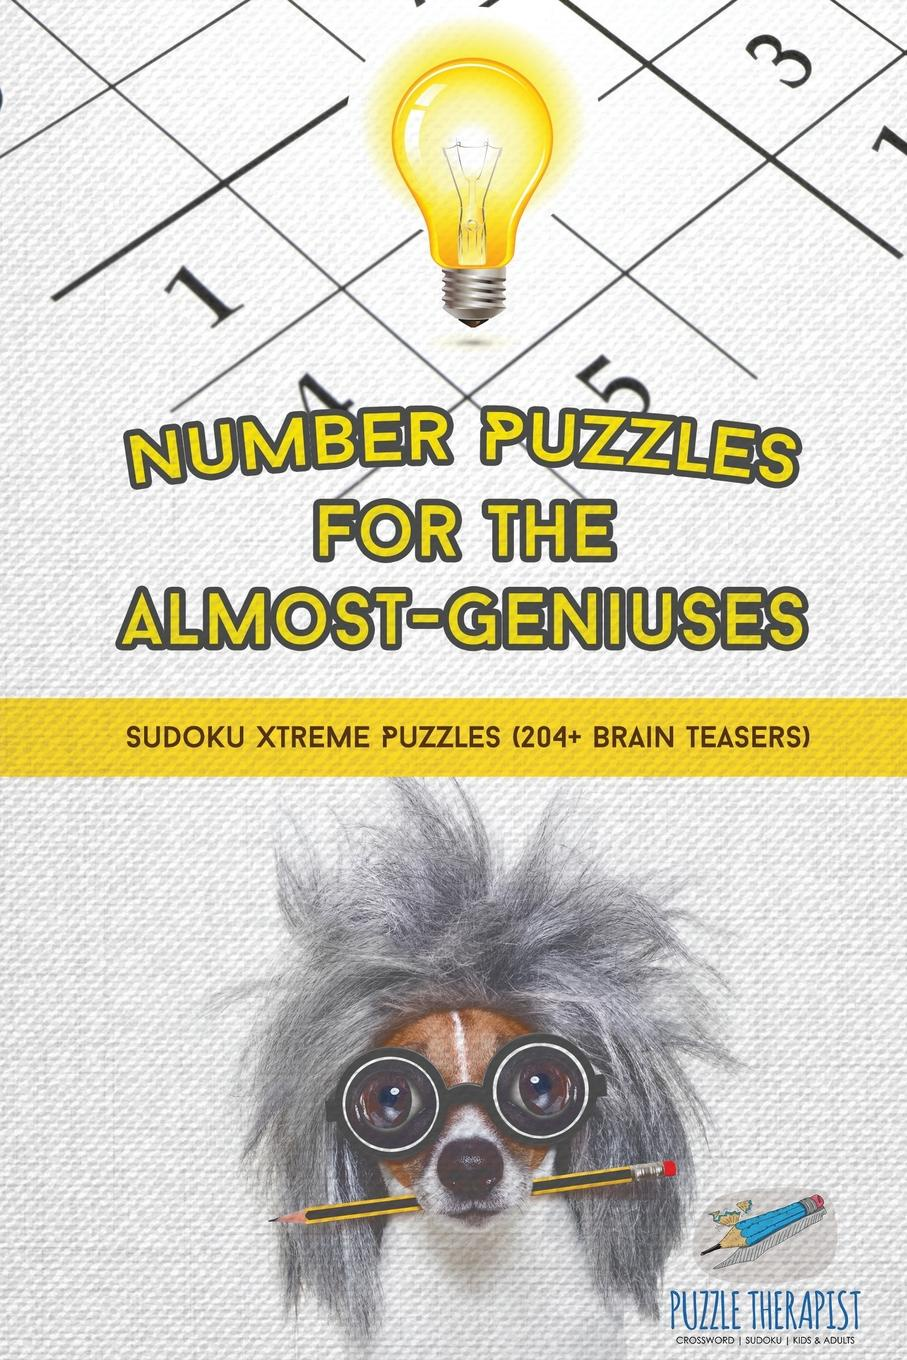 Puzzle Therapist Number Puzzles for the Almost-Geniuses . Sudoku Xtreme Puzzles (204+ Brain Teasers) конструктор металлический метал констракшн сэт metal puzzles brain teasers